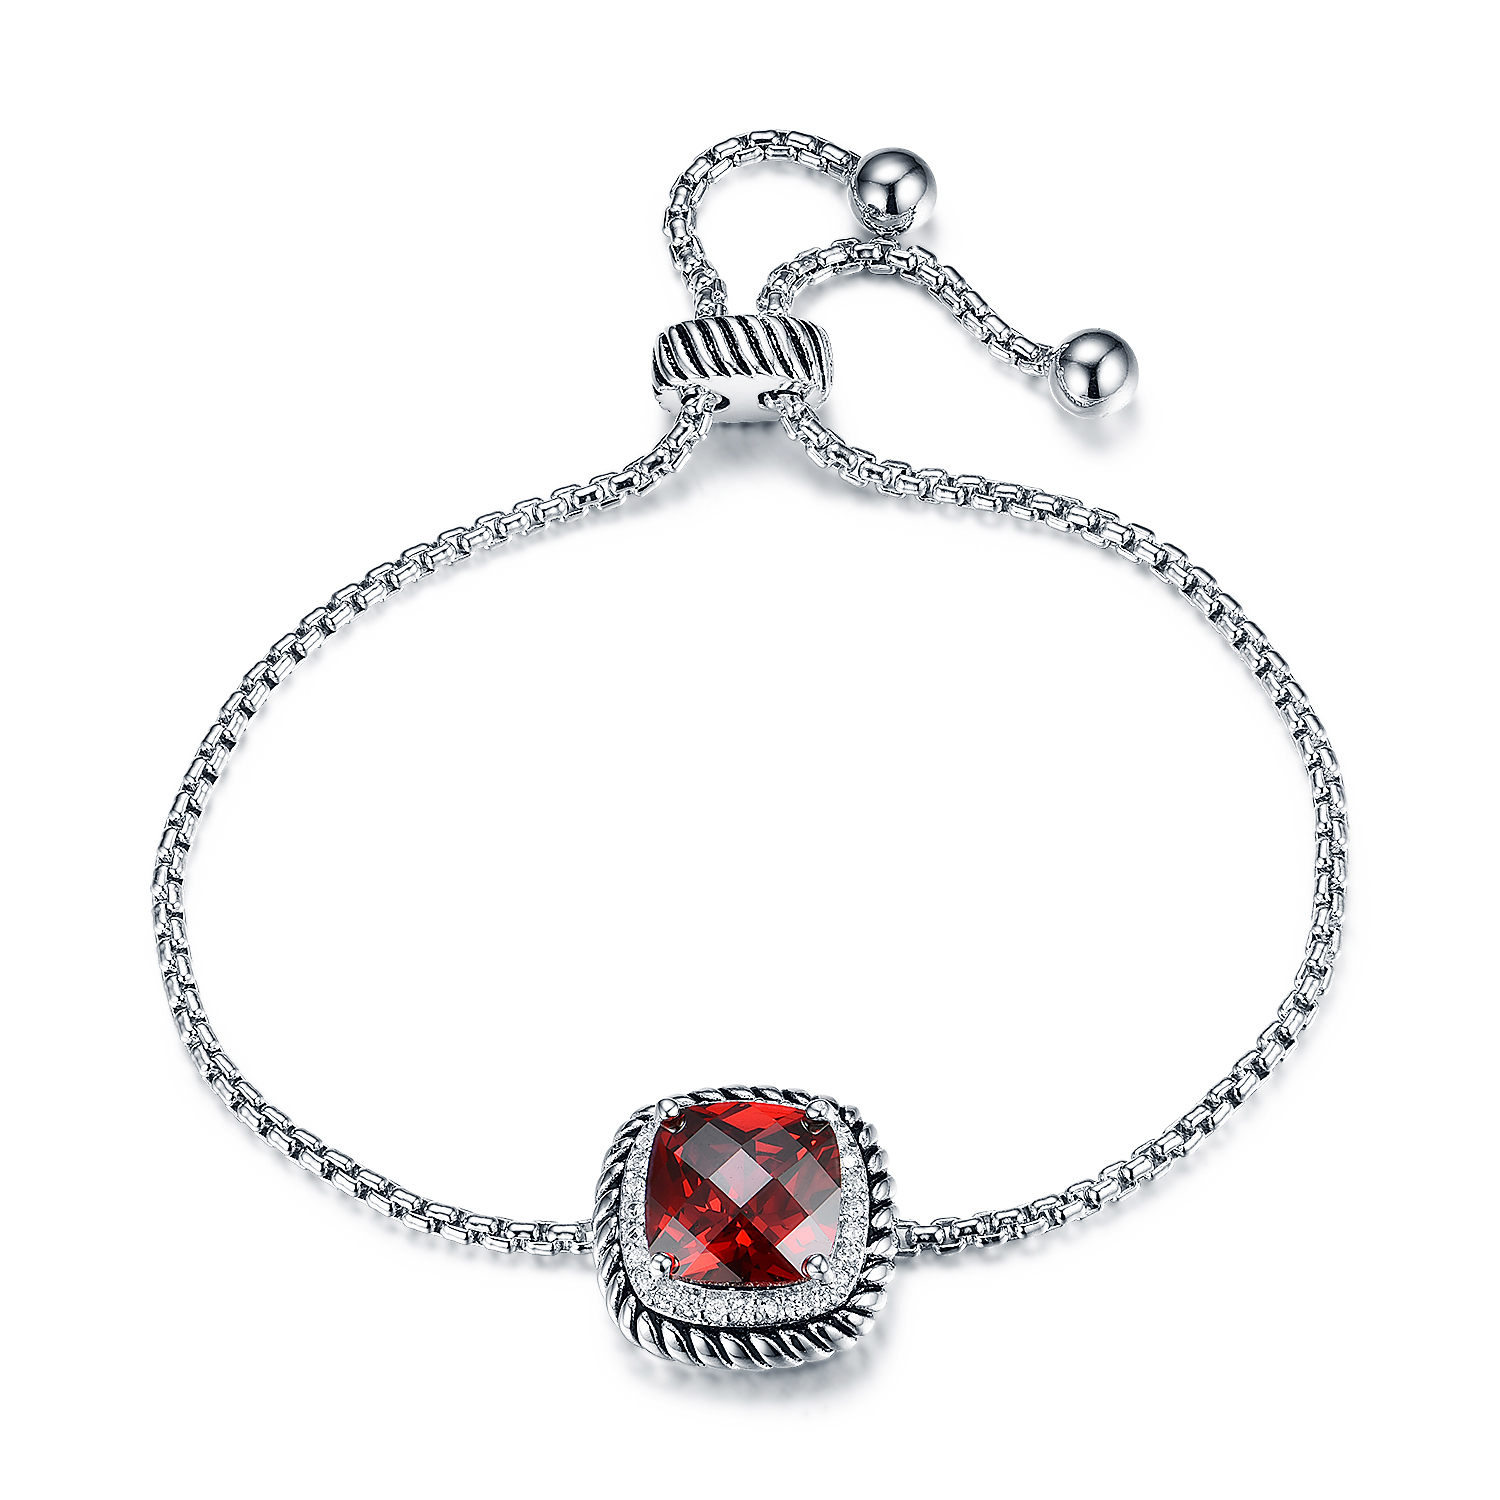 ST2640BR-Designer inspired Cable texture Square Bracelet with Square Garnet Cubic Zircon & small White CZ surrounded under Rhodium plated from China Top Jewelry vendor